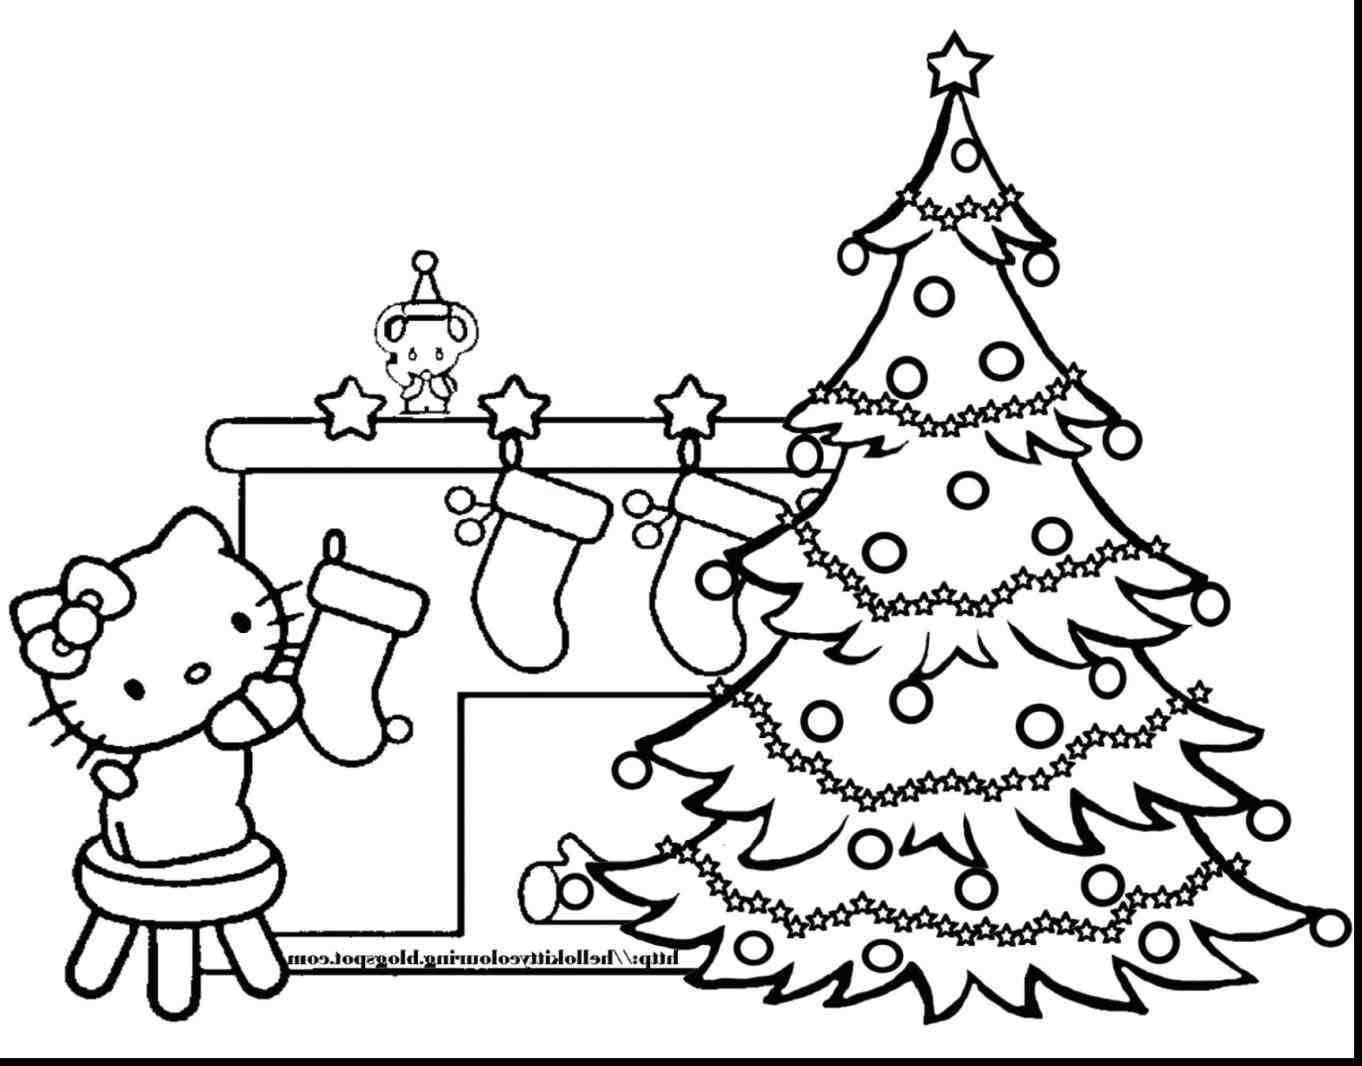 plain christmas stocking coloring pages Christmas